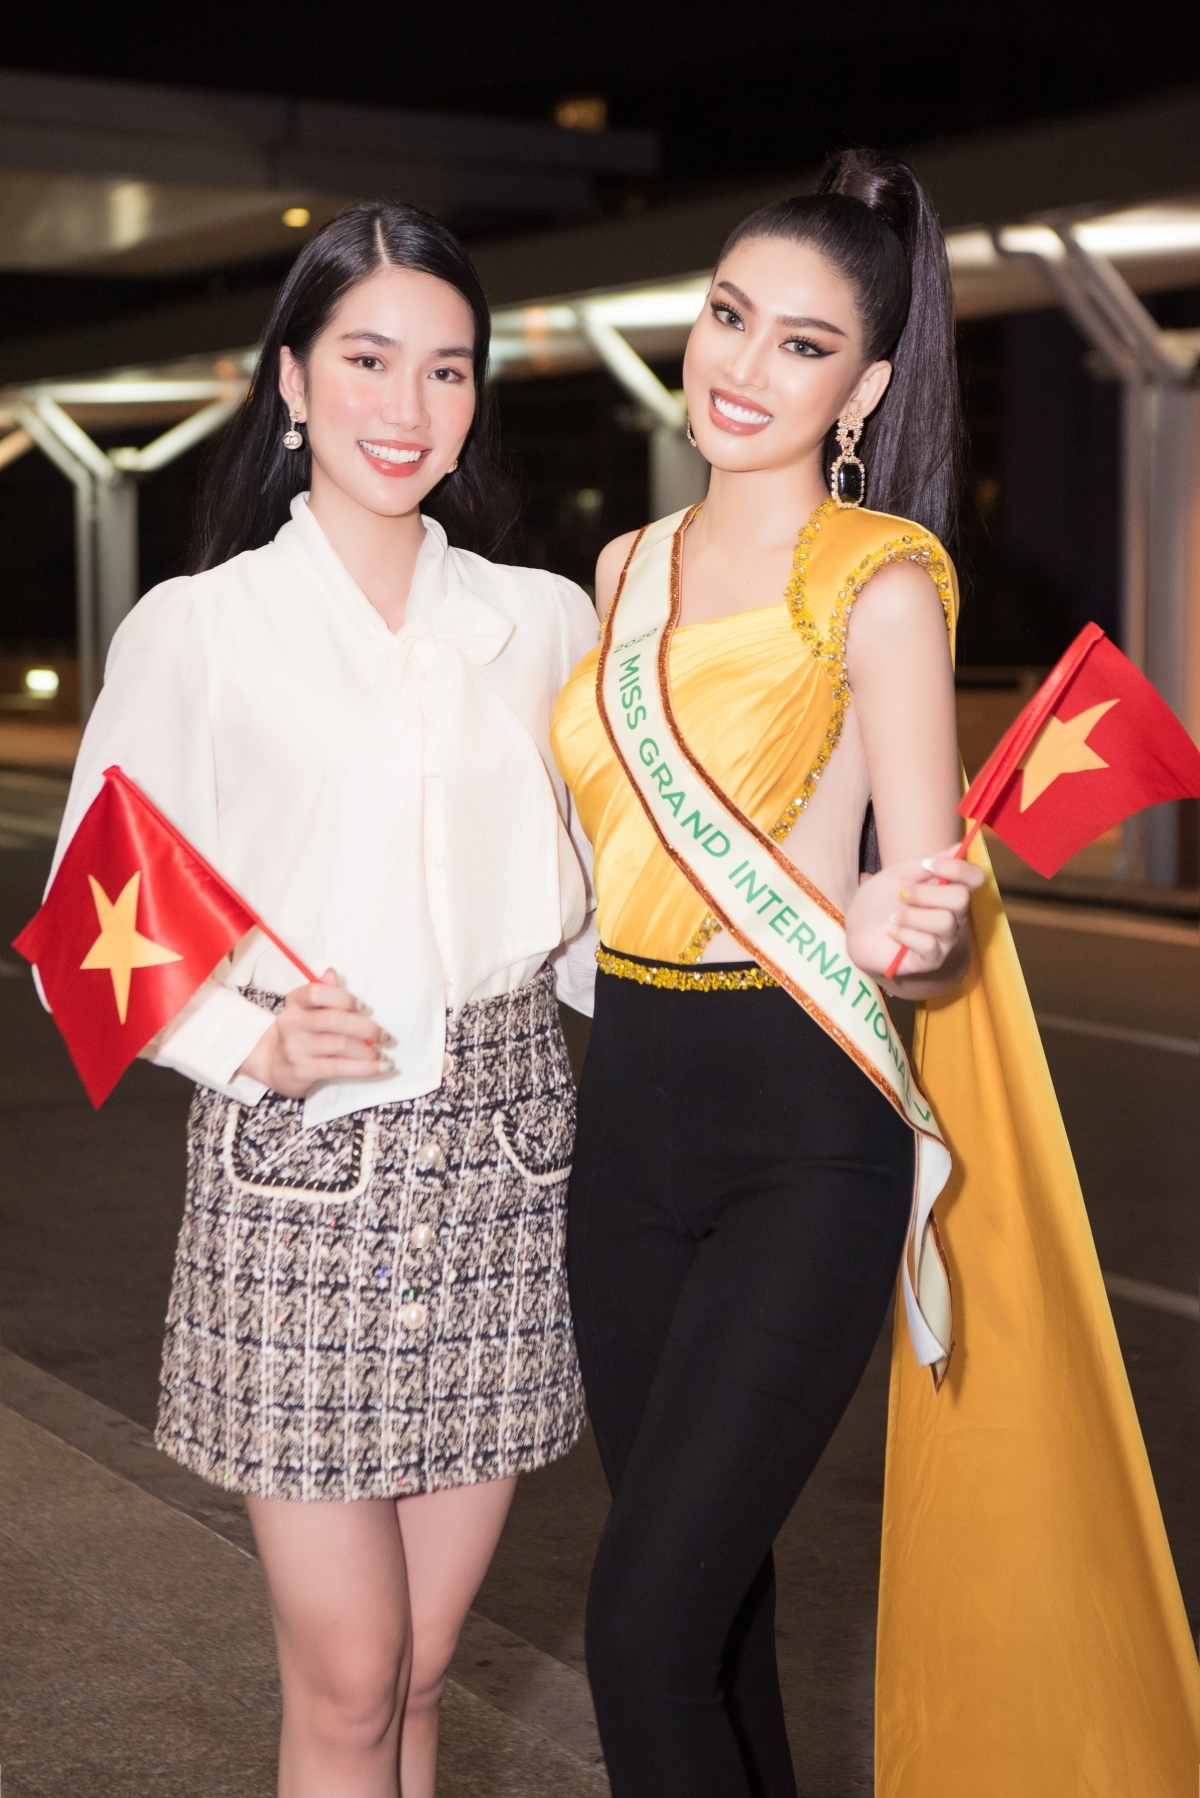 Miss Vietnam 2020 first runner-up Phuong Anh is present at the airport to see off Ngoc Thao.